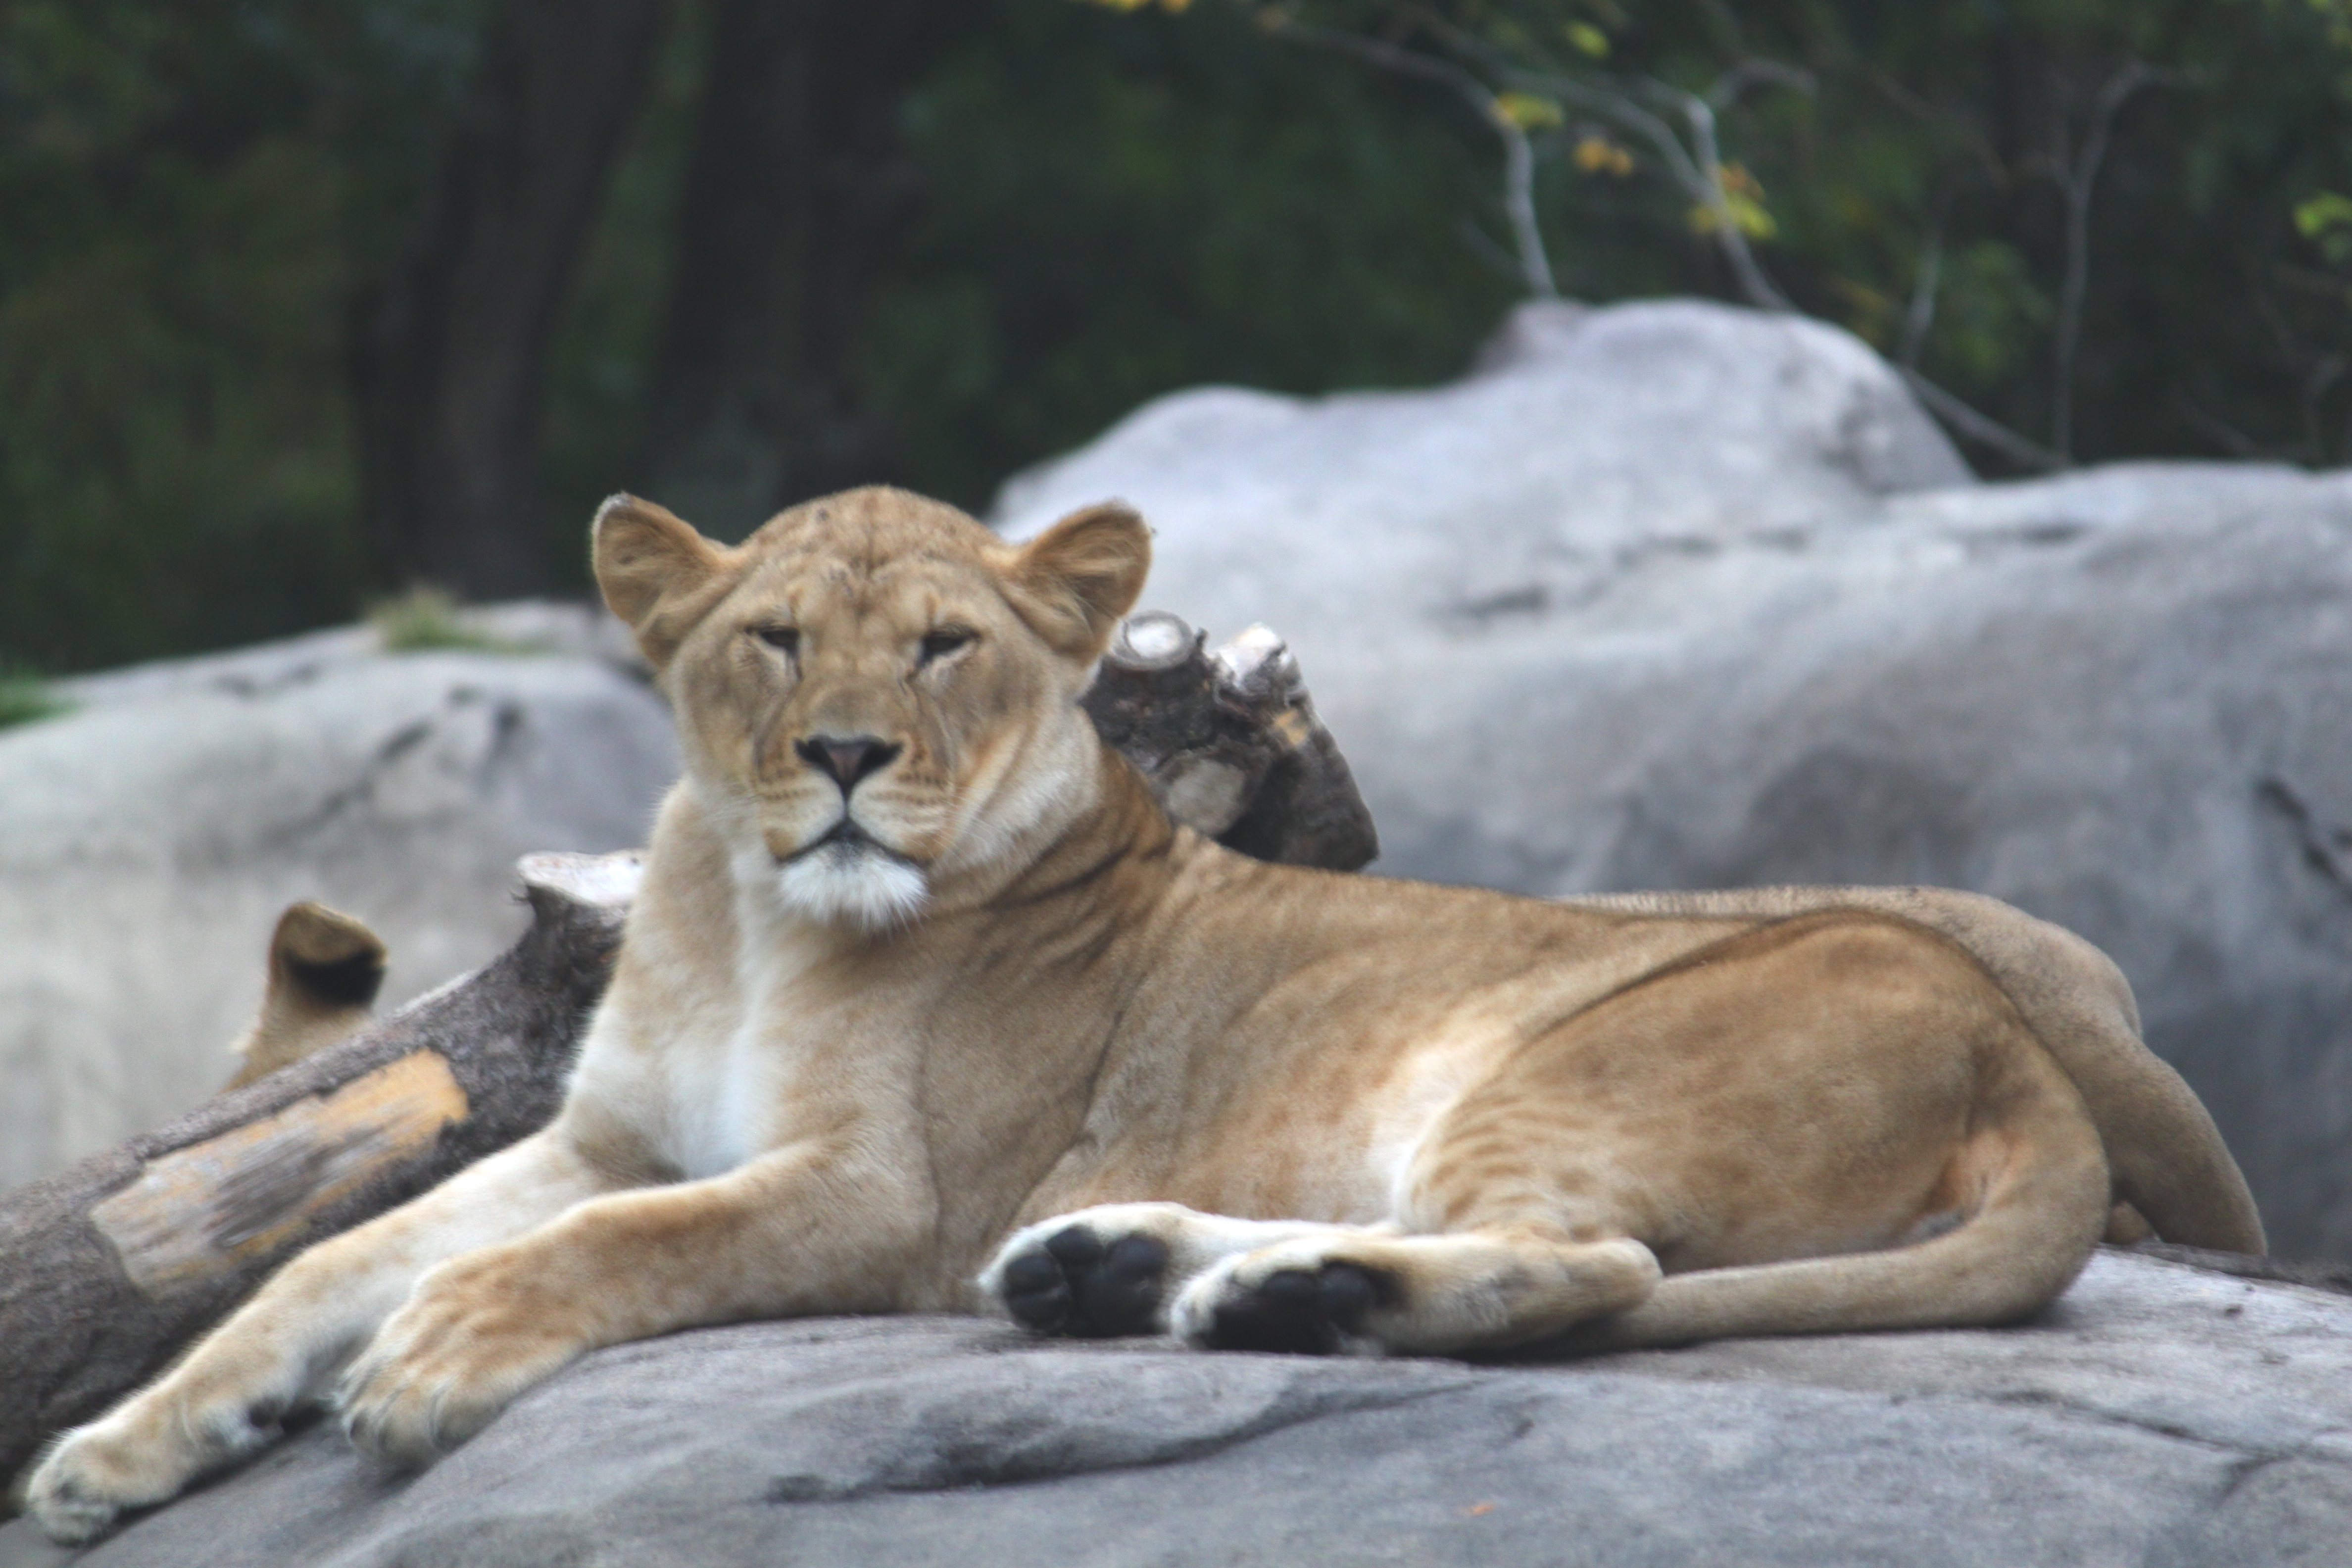 Chill Pill - Like a lion resting on rocks.